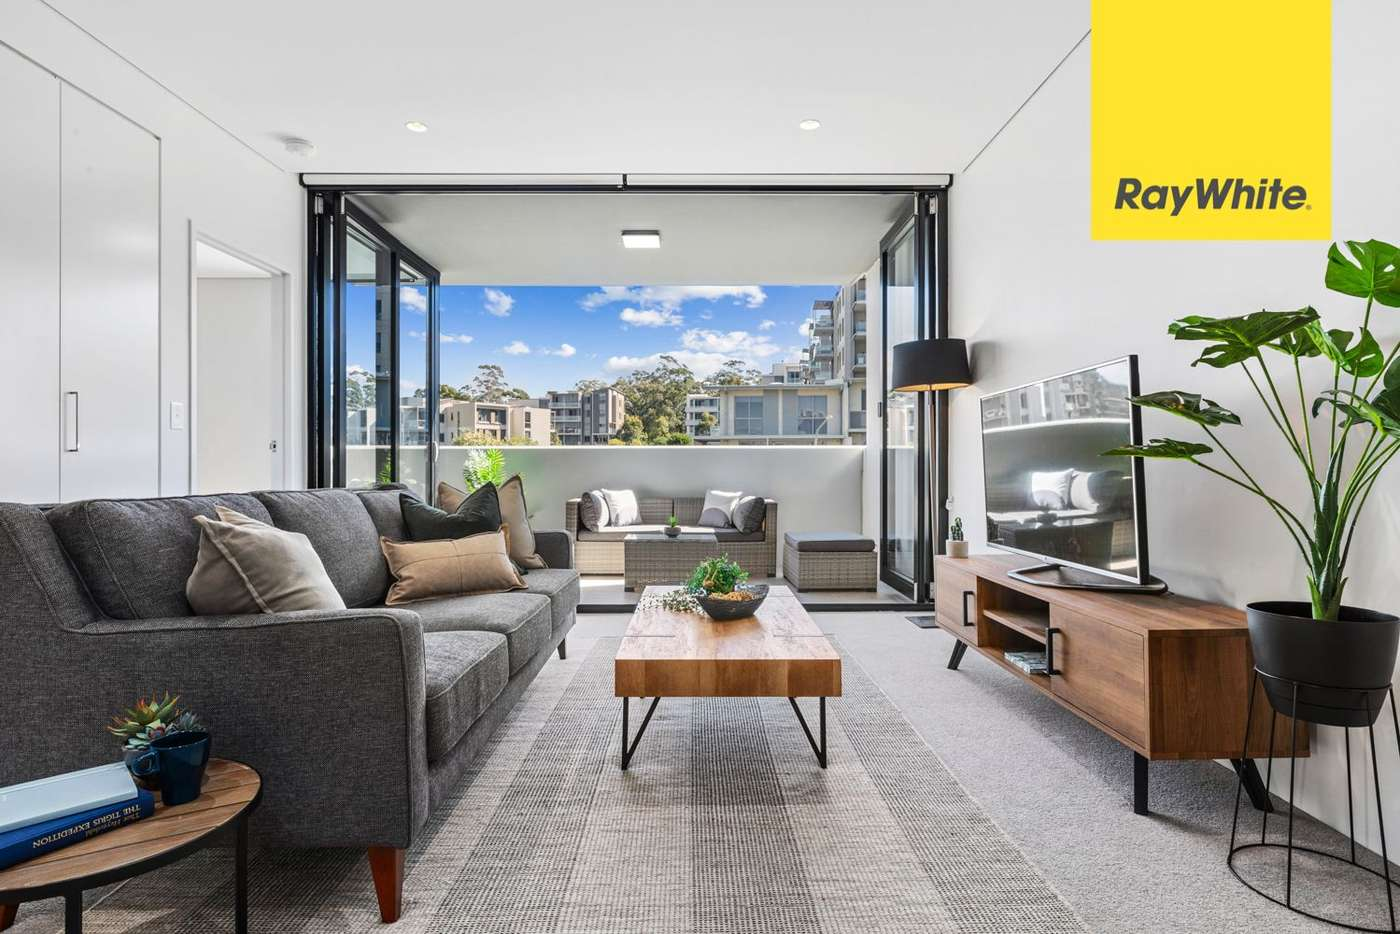 Main view of Homely apartment listing, 302/62 Mobbs Lane, Eastwood NSW 2122